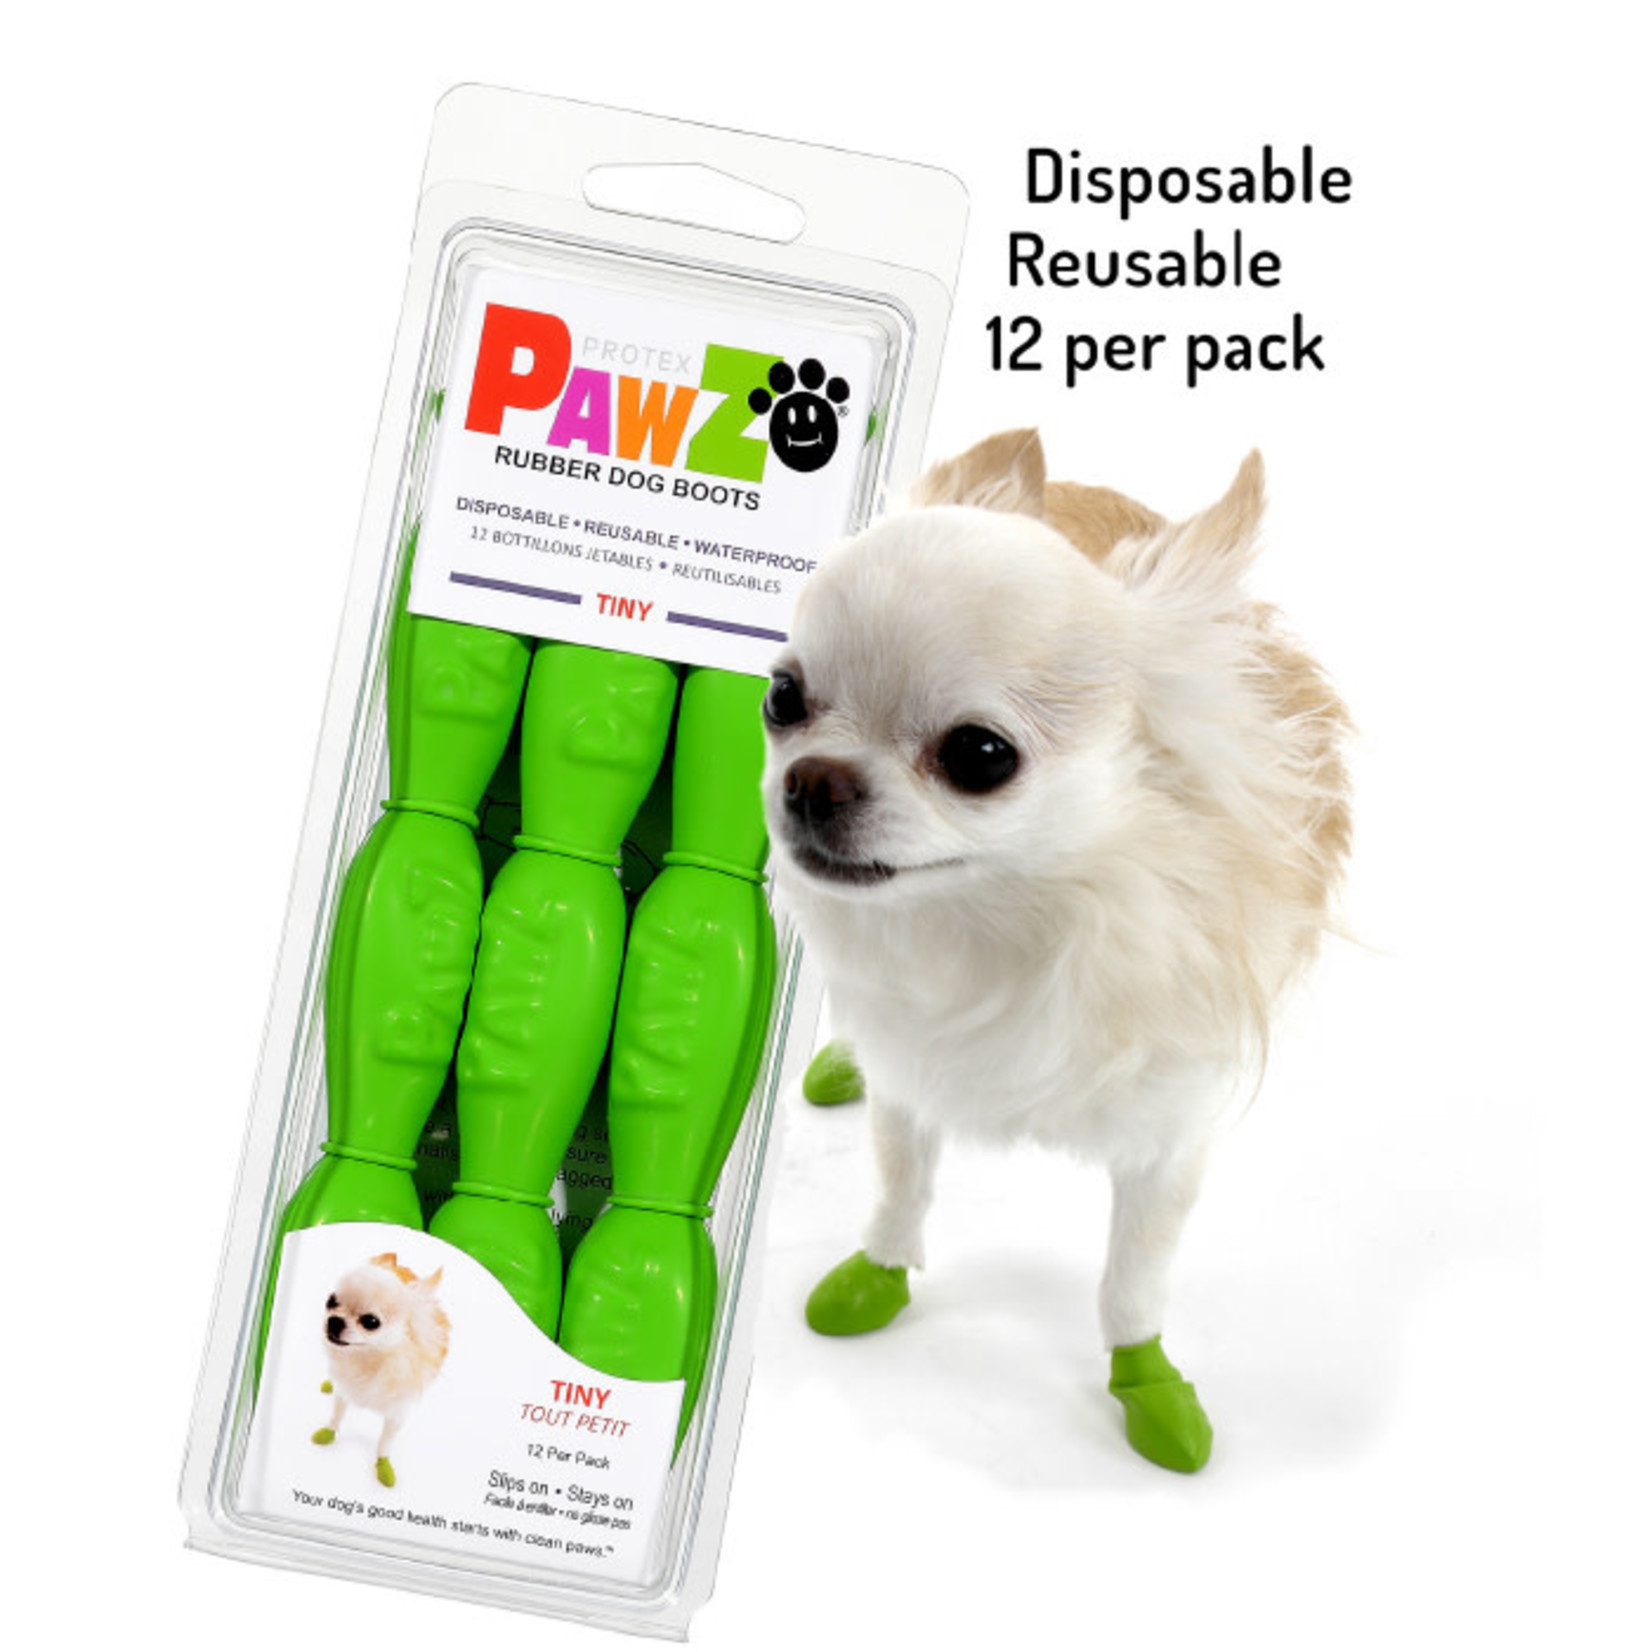 PAWZ Dog Boots Green Tiny 12 Pack